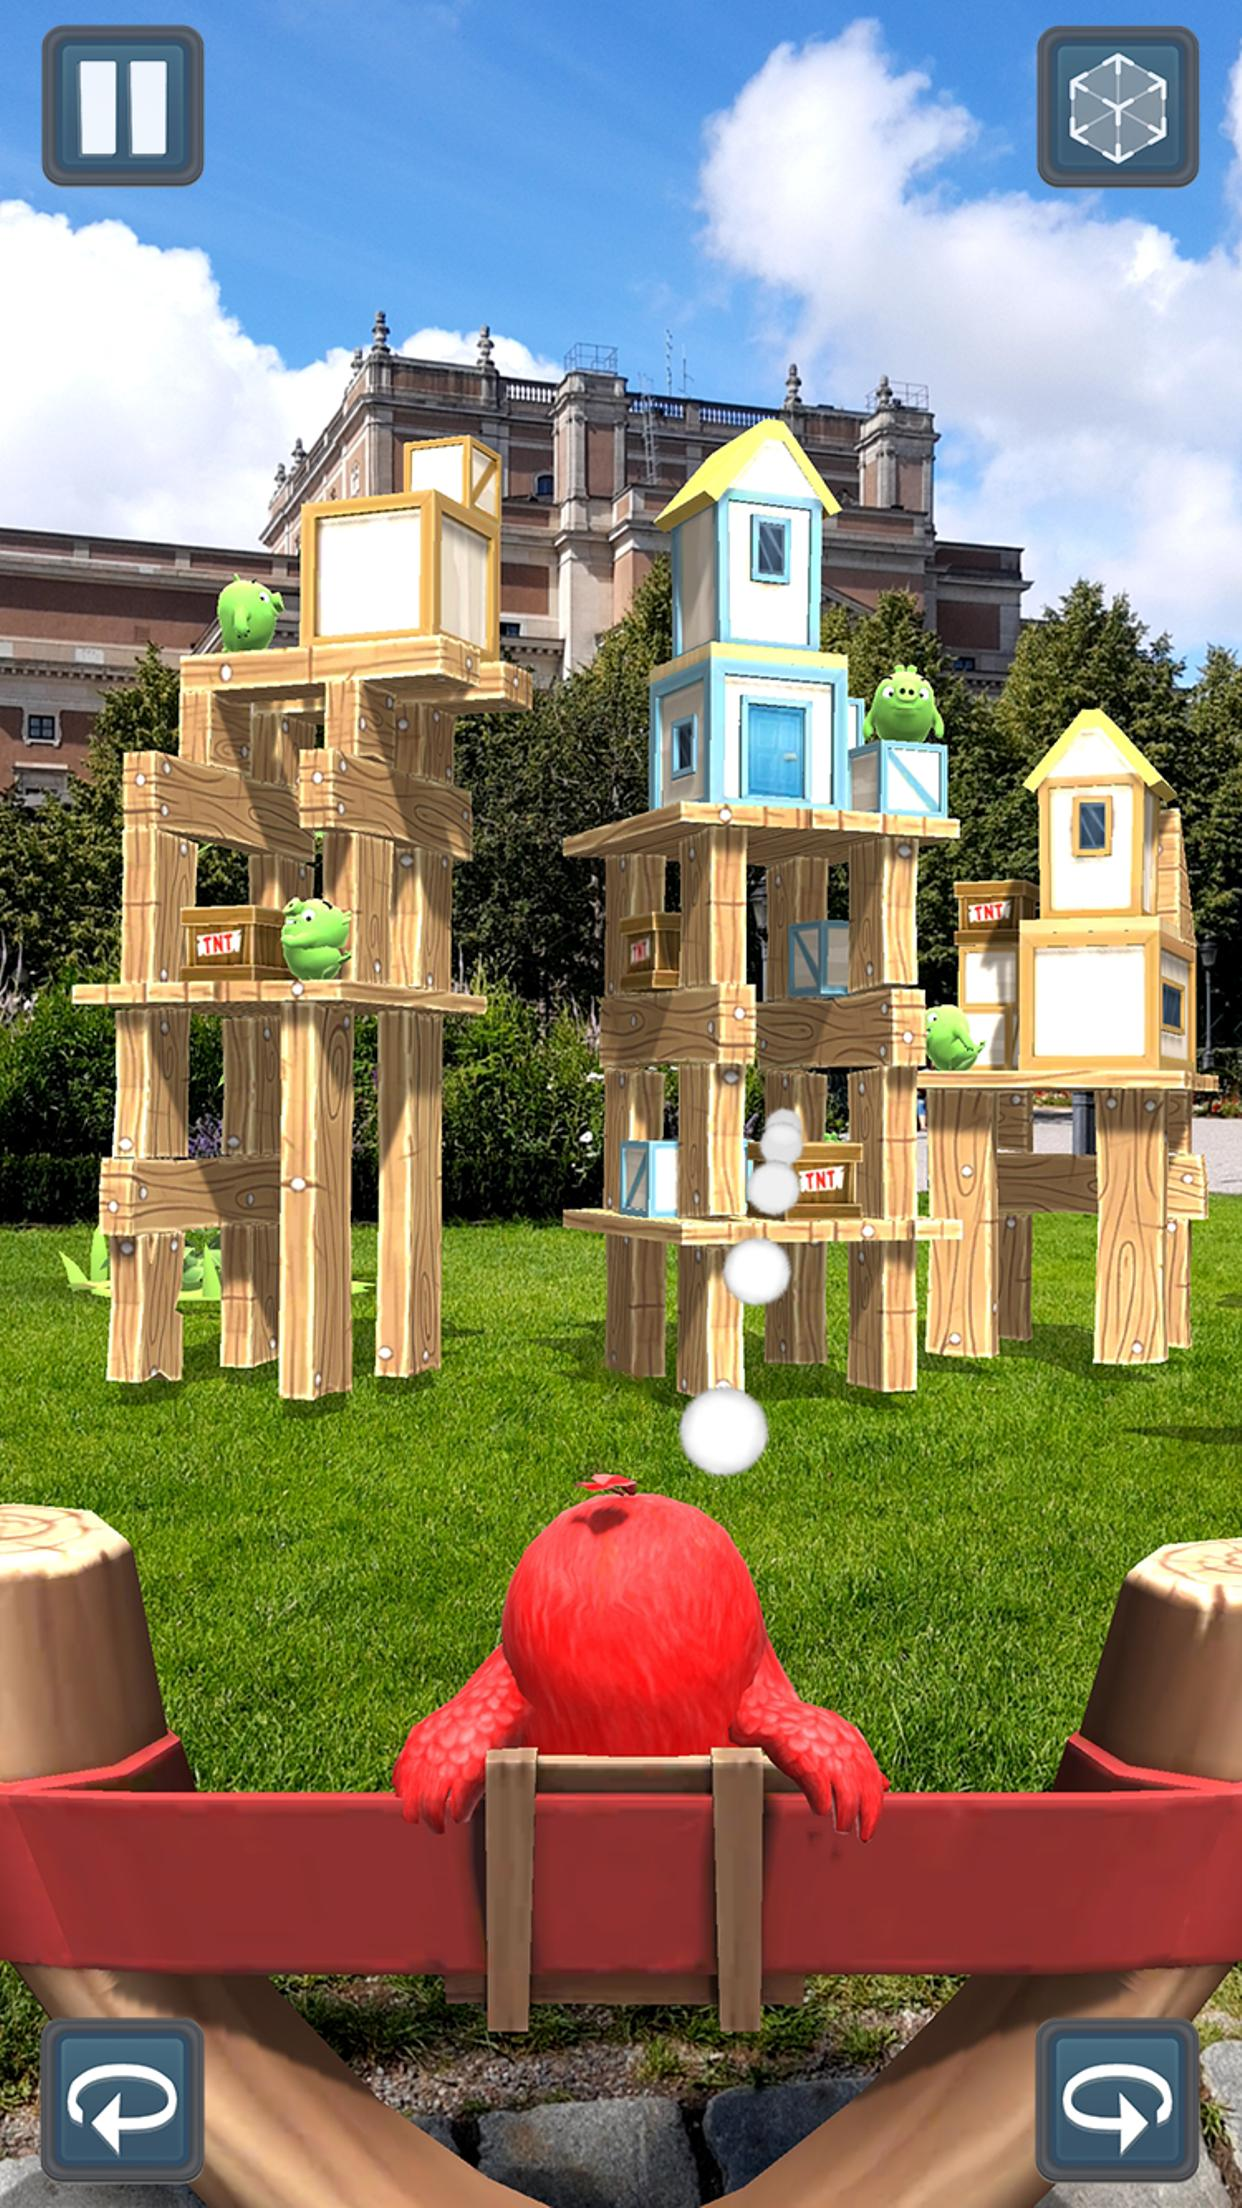 Angry Birds AR: Isle of Pigs 1.1.2.57453 Screenshot 11